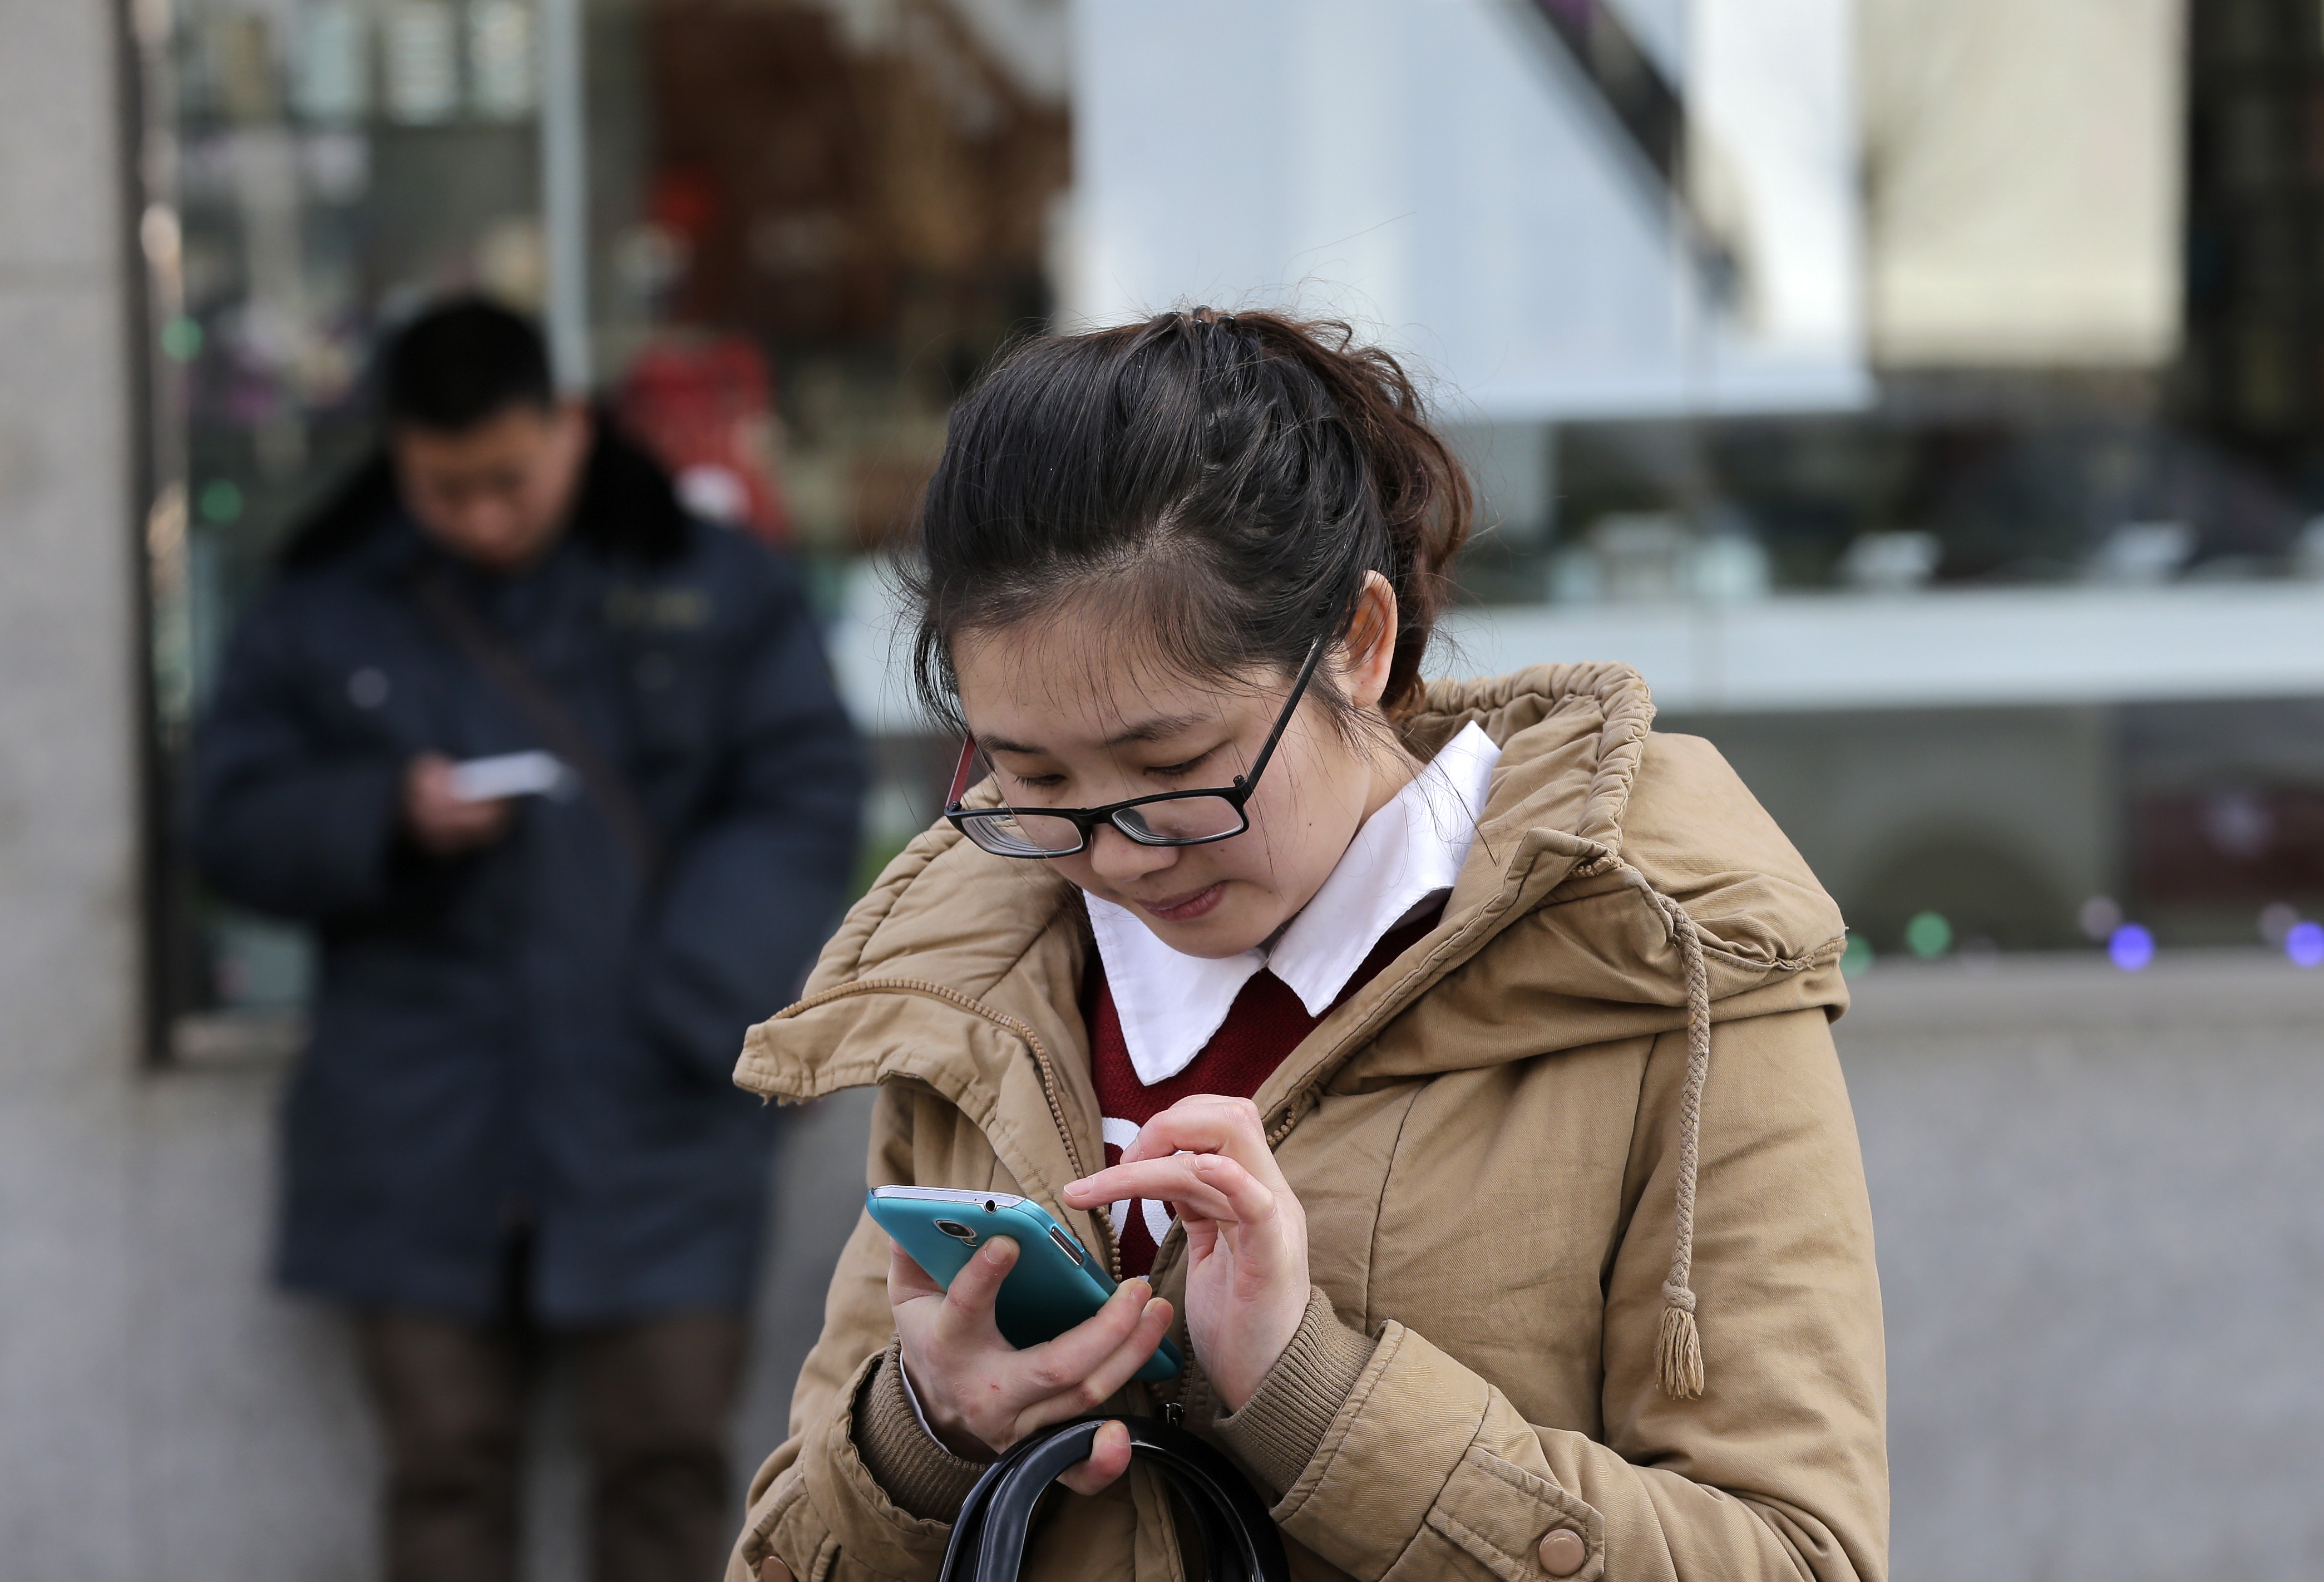 Chinese people check on their smartphones on a street in Beijing Monday, Feb. 16, 2015. On the Internet, in college classrooms and in corporate offices, the Chinese Communist Party has raised the virtual wall separating the world's most populous country from the rest of the globe. Experts say it reflects a distrust of outside influences that party thinks could threaten its control on society.